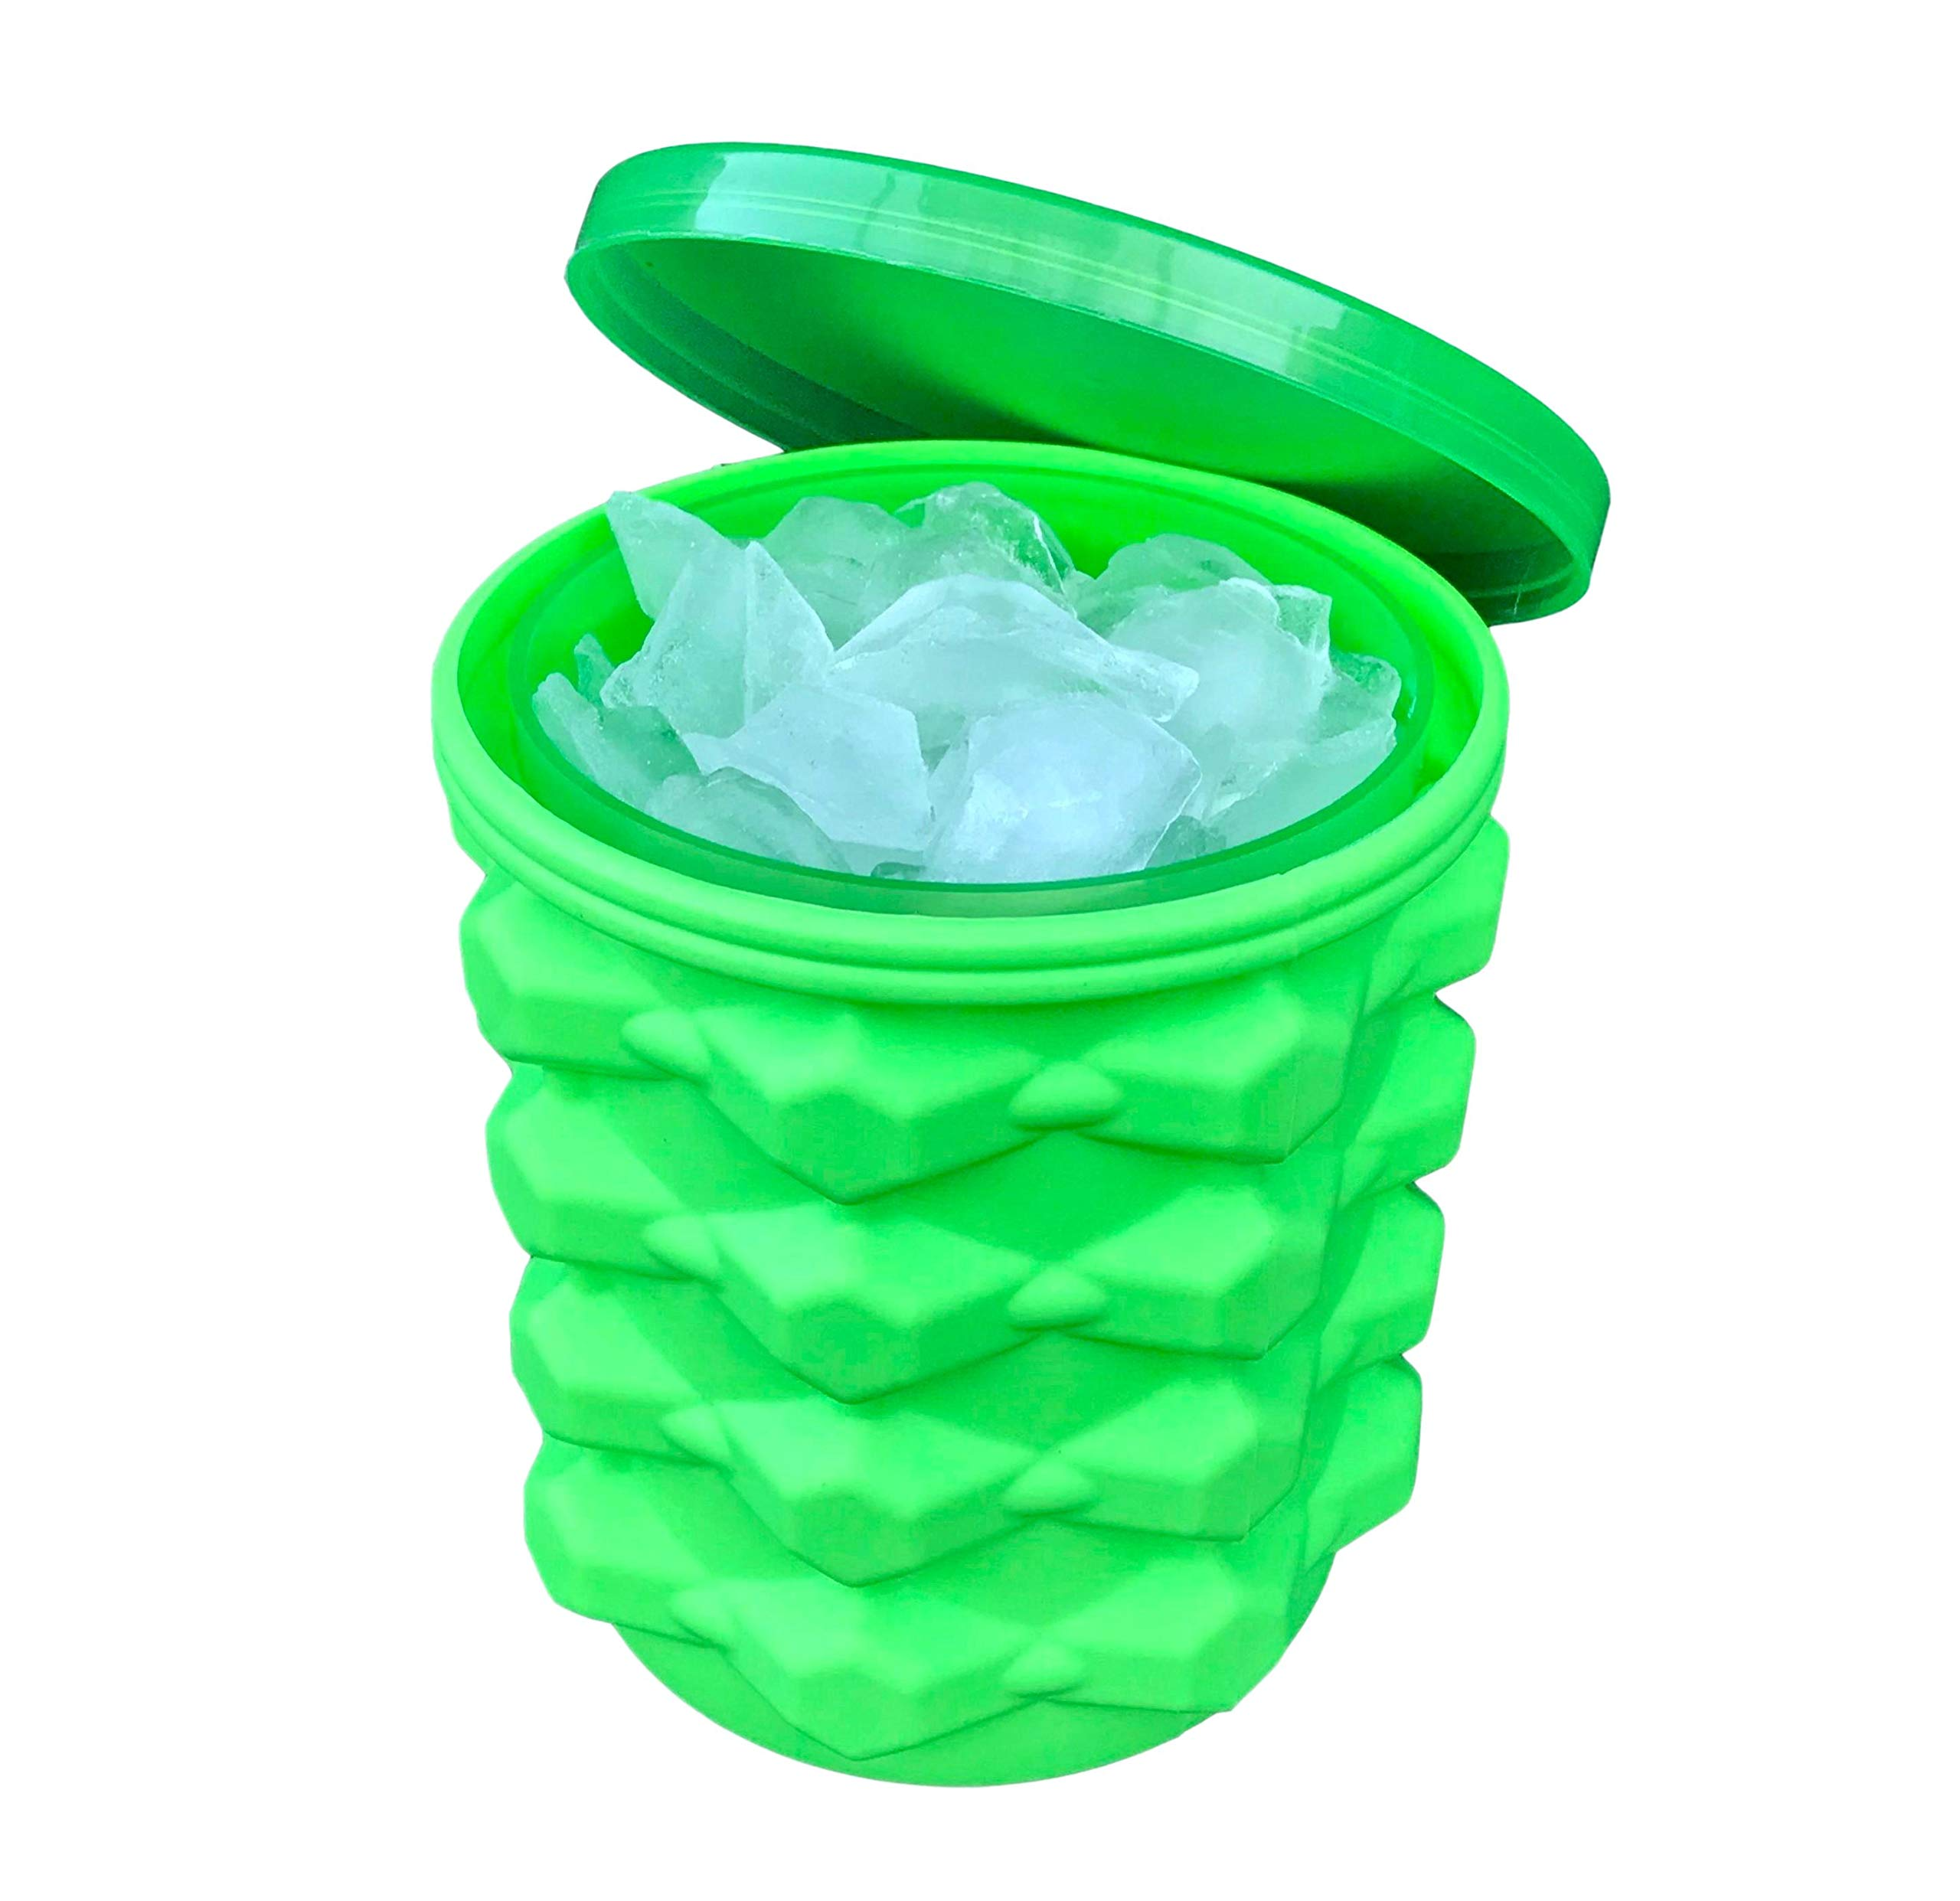 The Ultimate Ice Cube Maker Silicone Bucket with Lid Makes Small-Size Nugget Ice Chips for Soft Drinks, Cocktail Ice, Wine On Ice, Crushed Ice Maker Bucket Ice Tray Silicon Ice Cube Molds Cylinder Ice by Mimapac